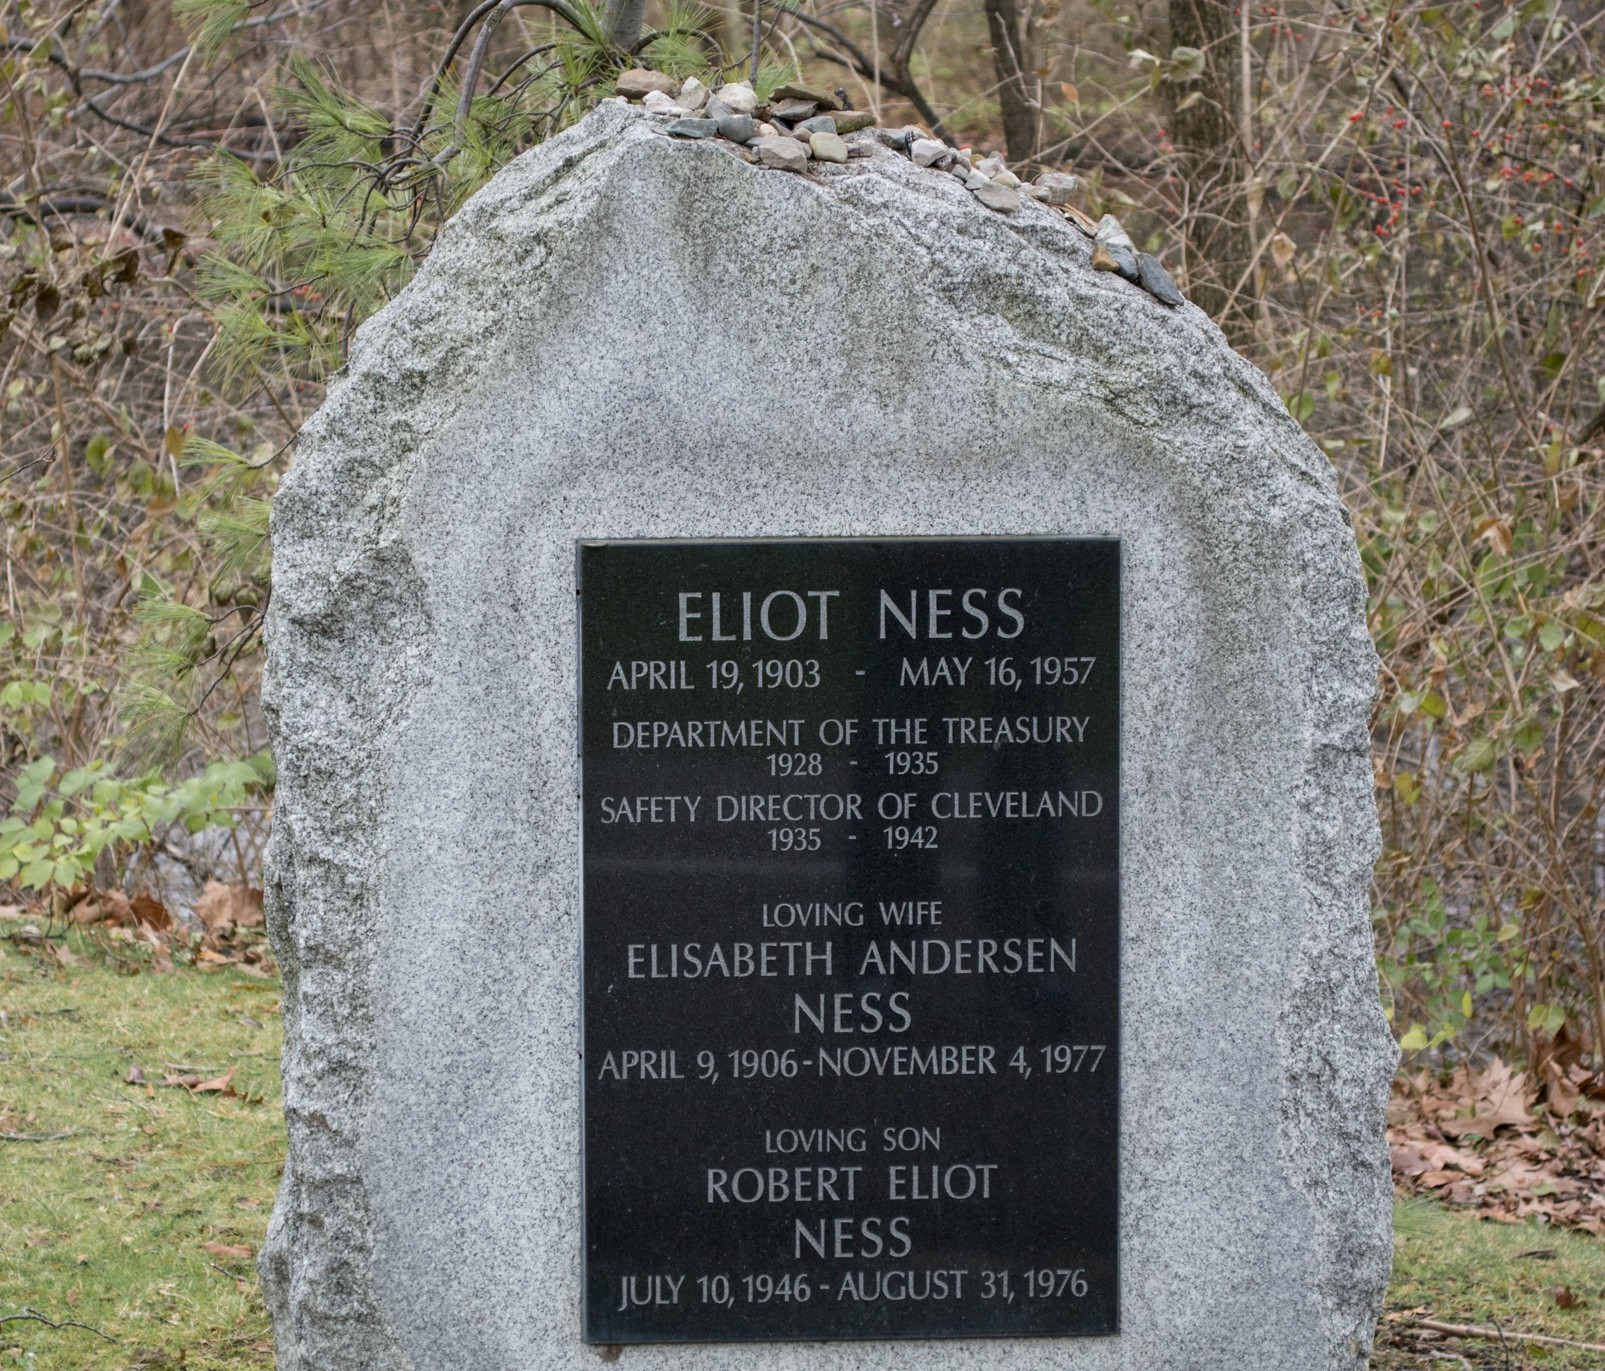 Eliot Ness Facts